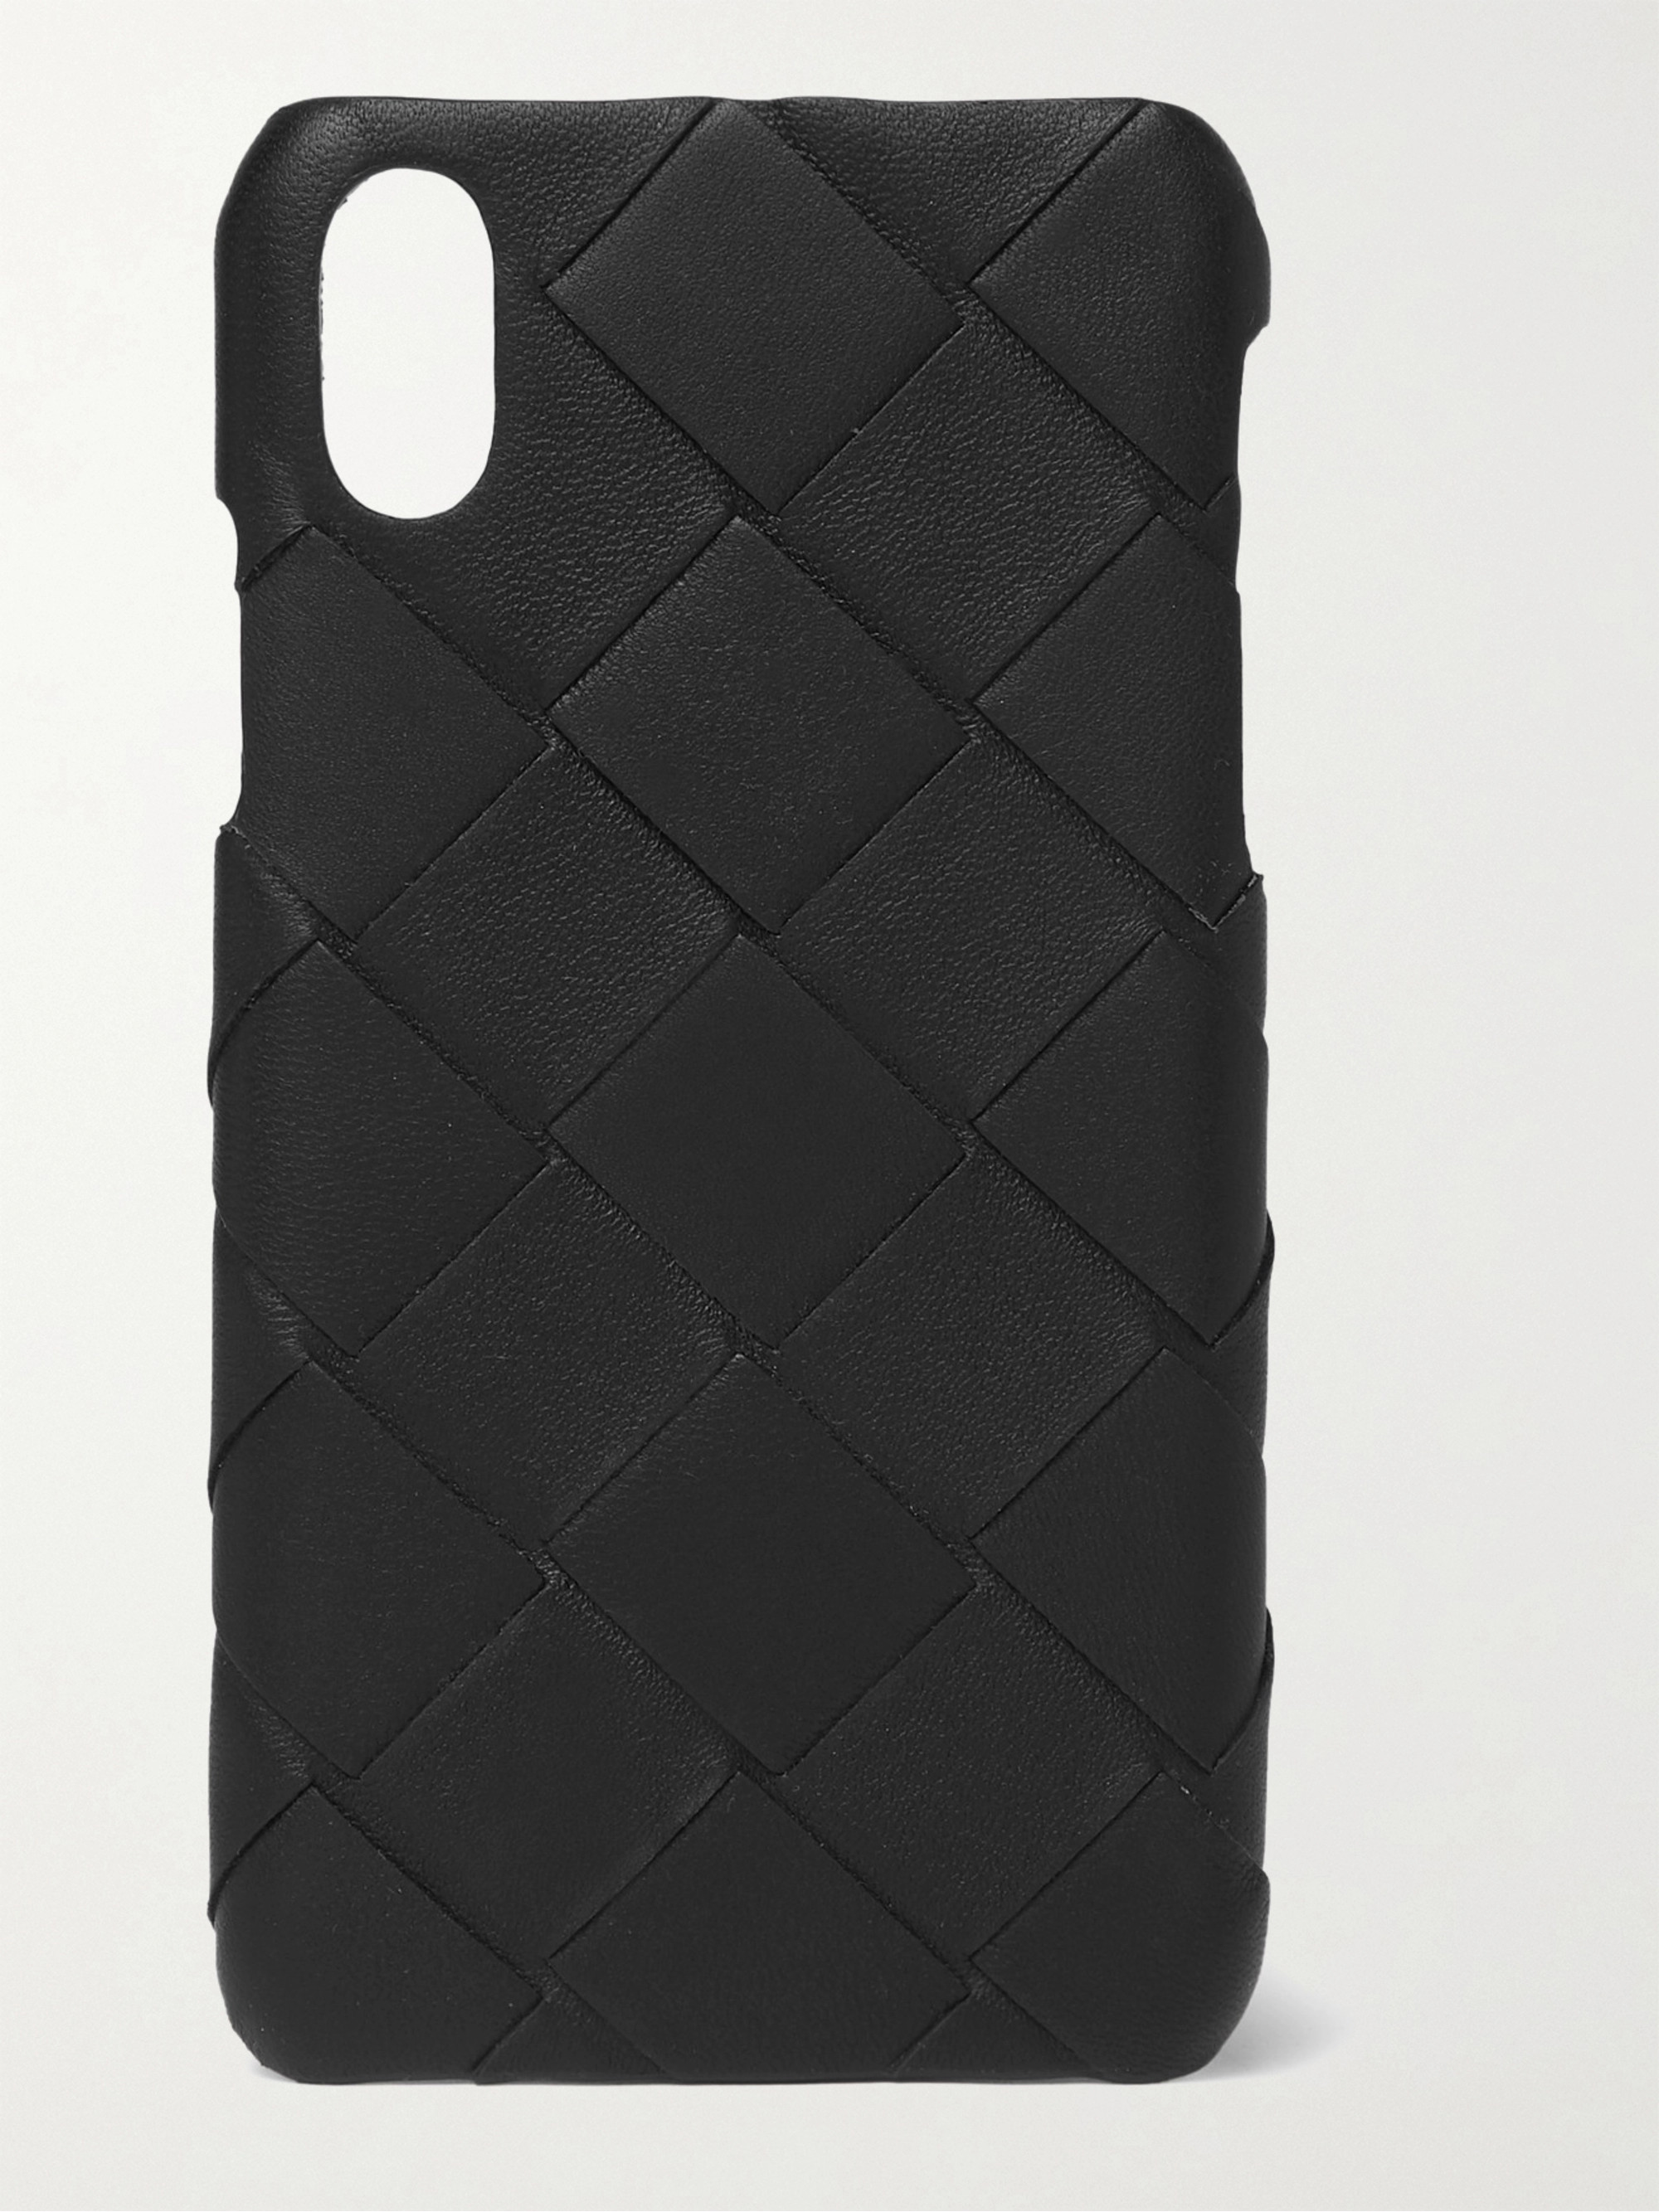 Bottega Veneta Intrecciato Leather iPhone X Case